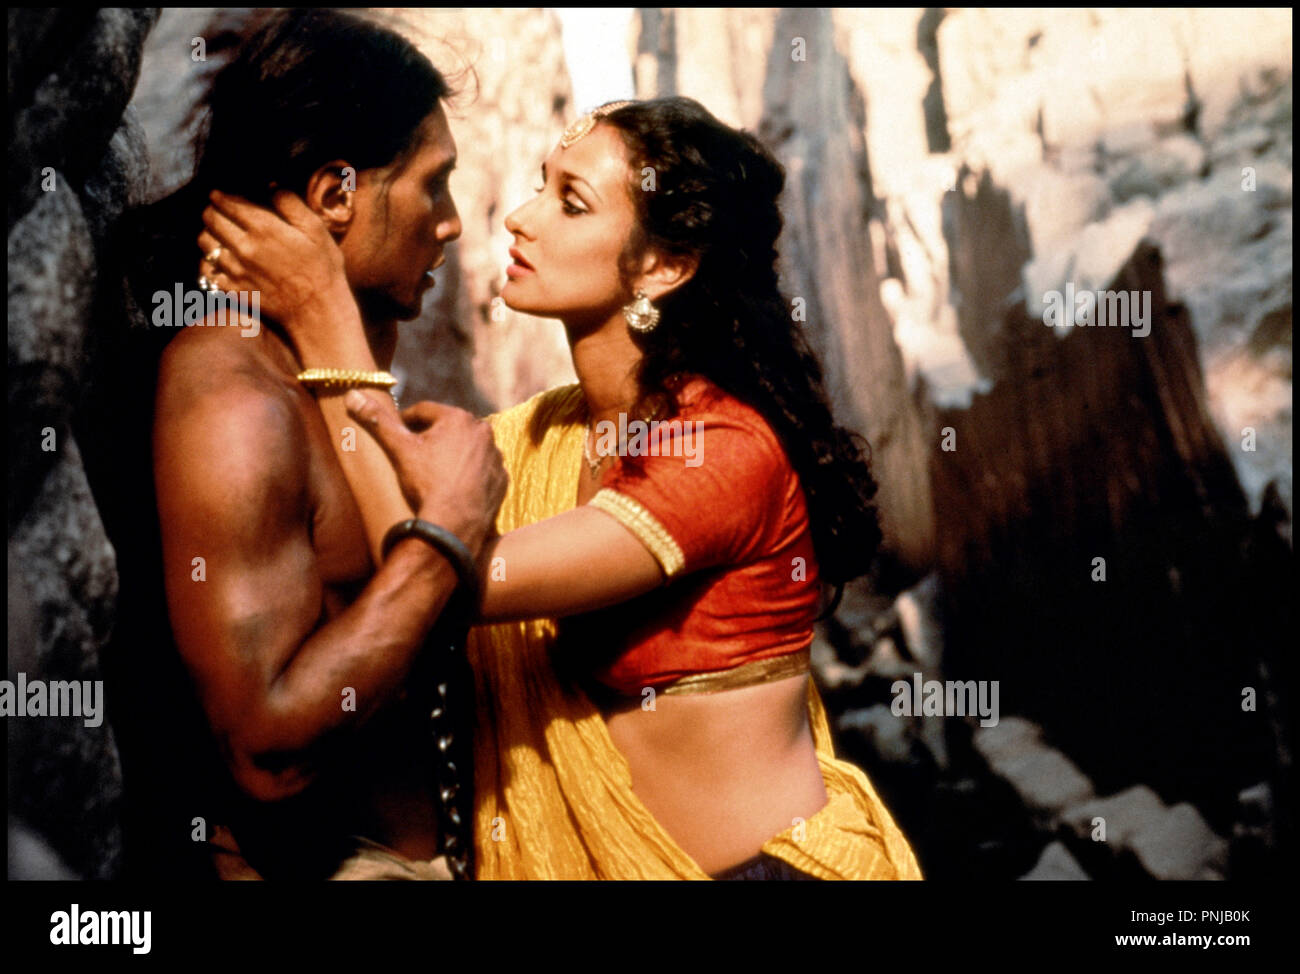 kamasutra a tale of love movie download free